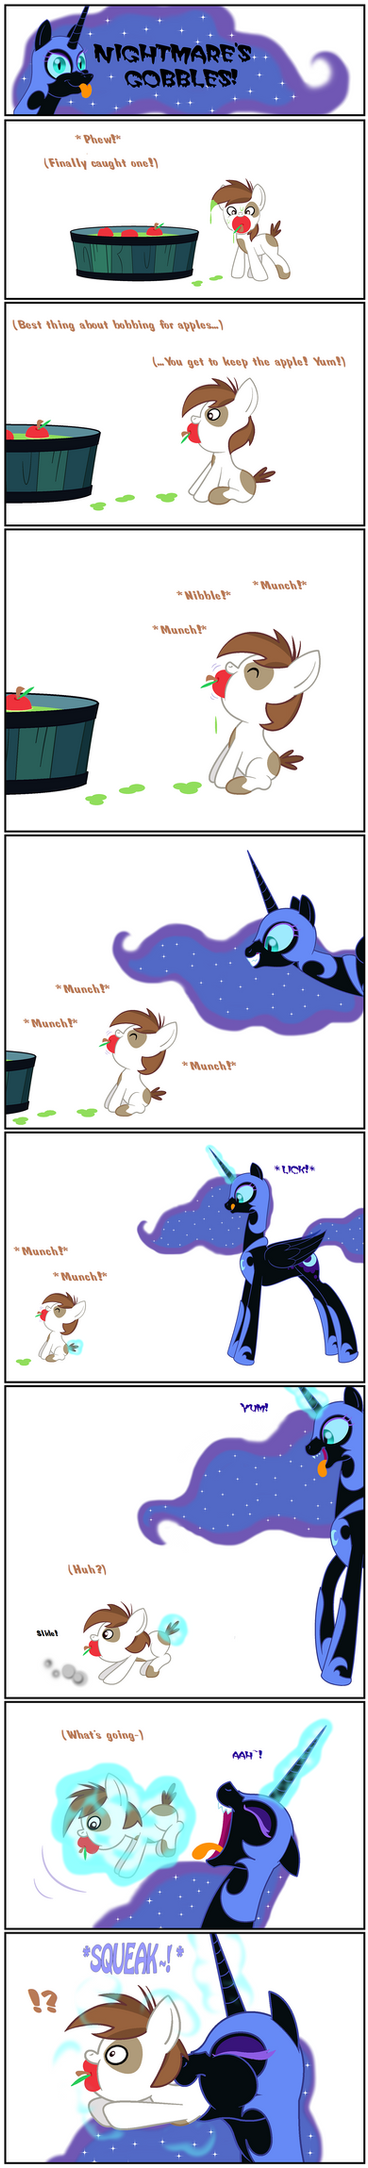 Nightmare's Gobbles: Pip the Apple (2/10) by BBBHuey